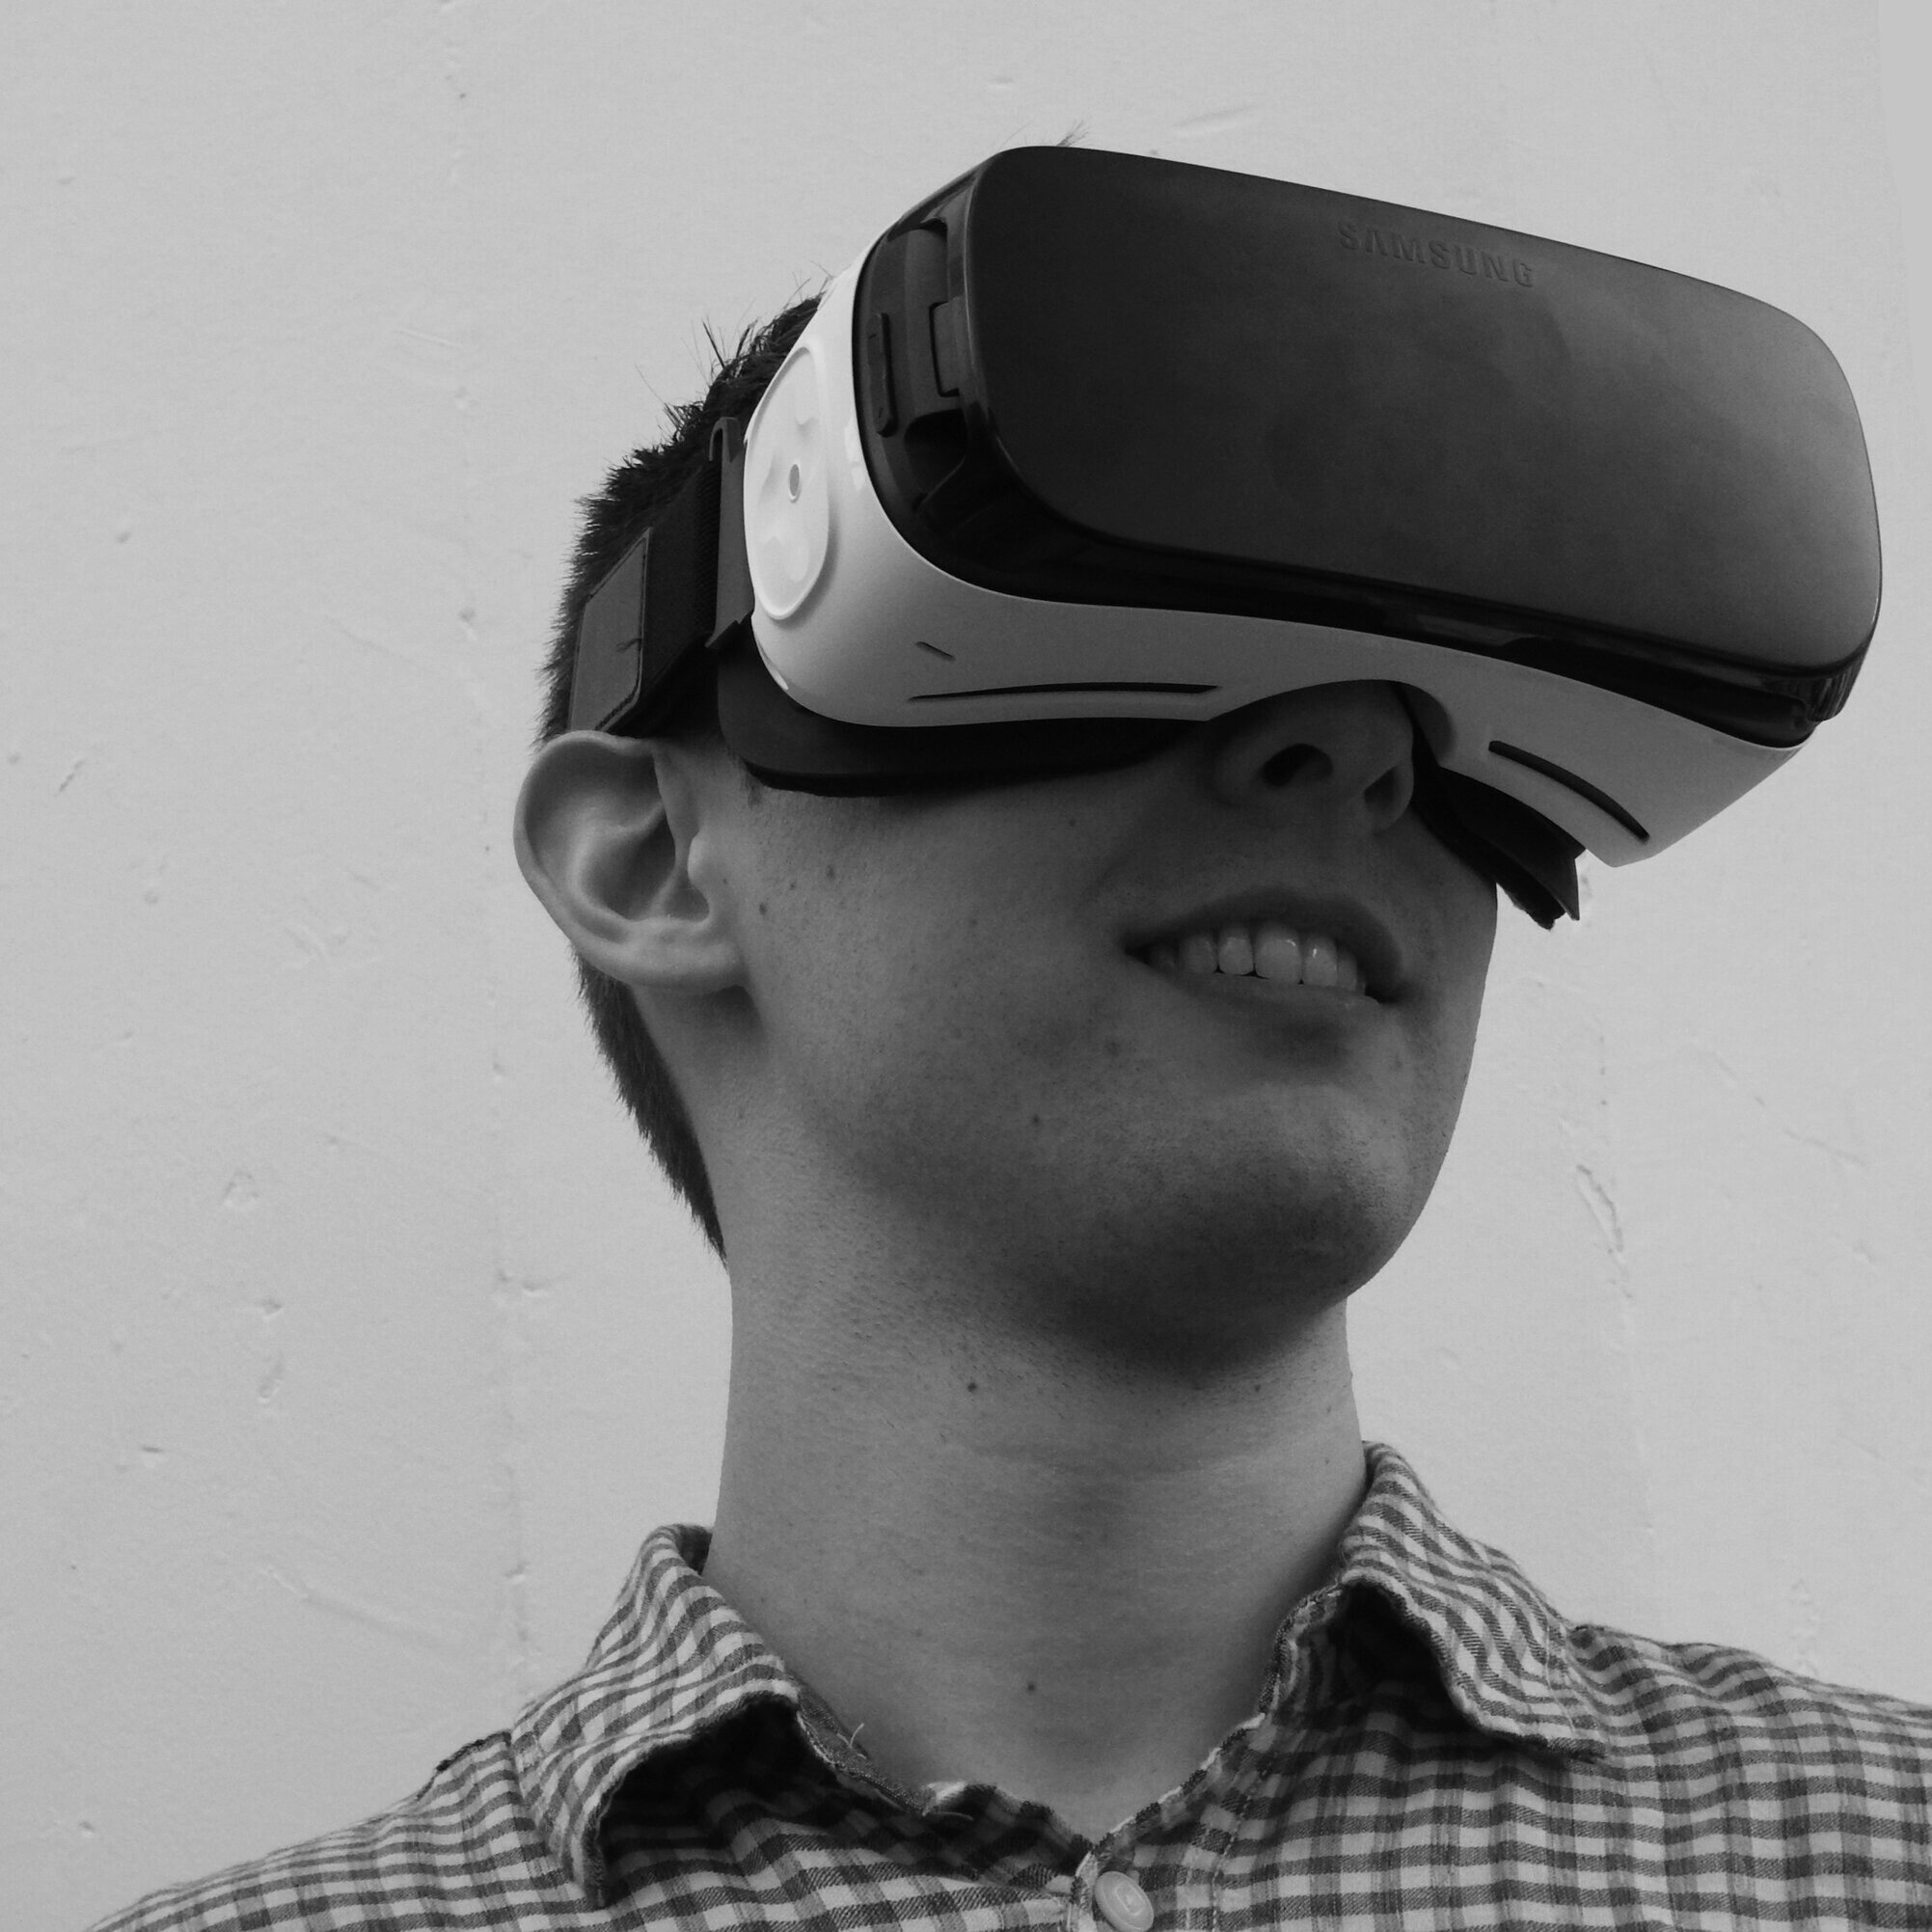 How VR is making us better -